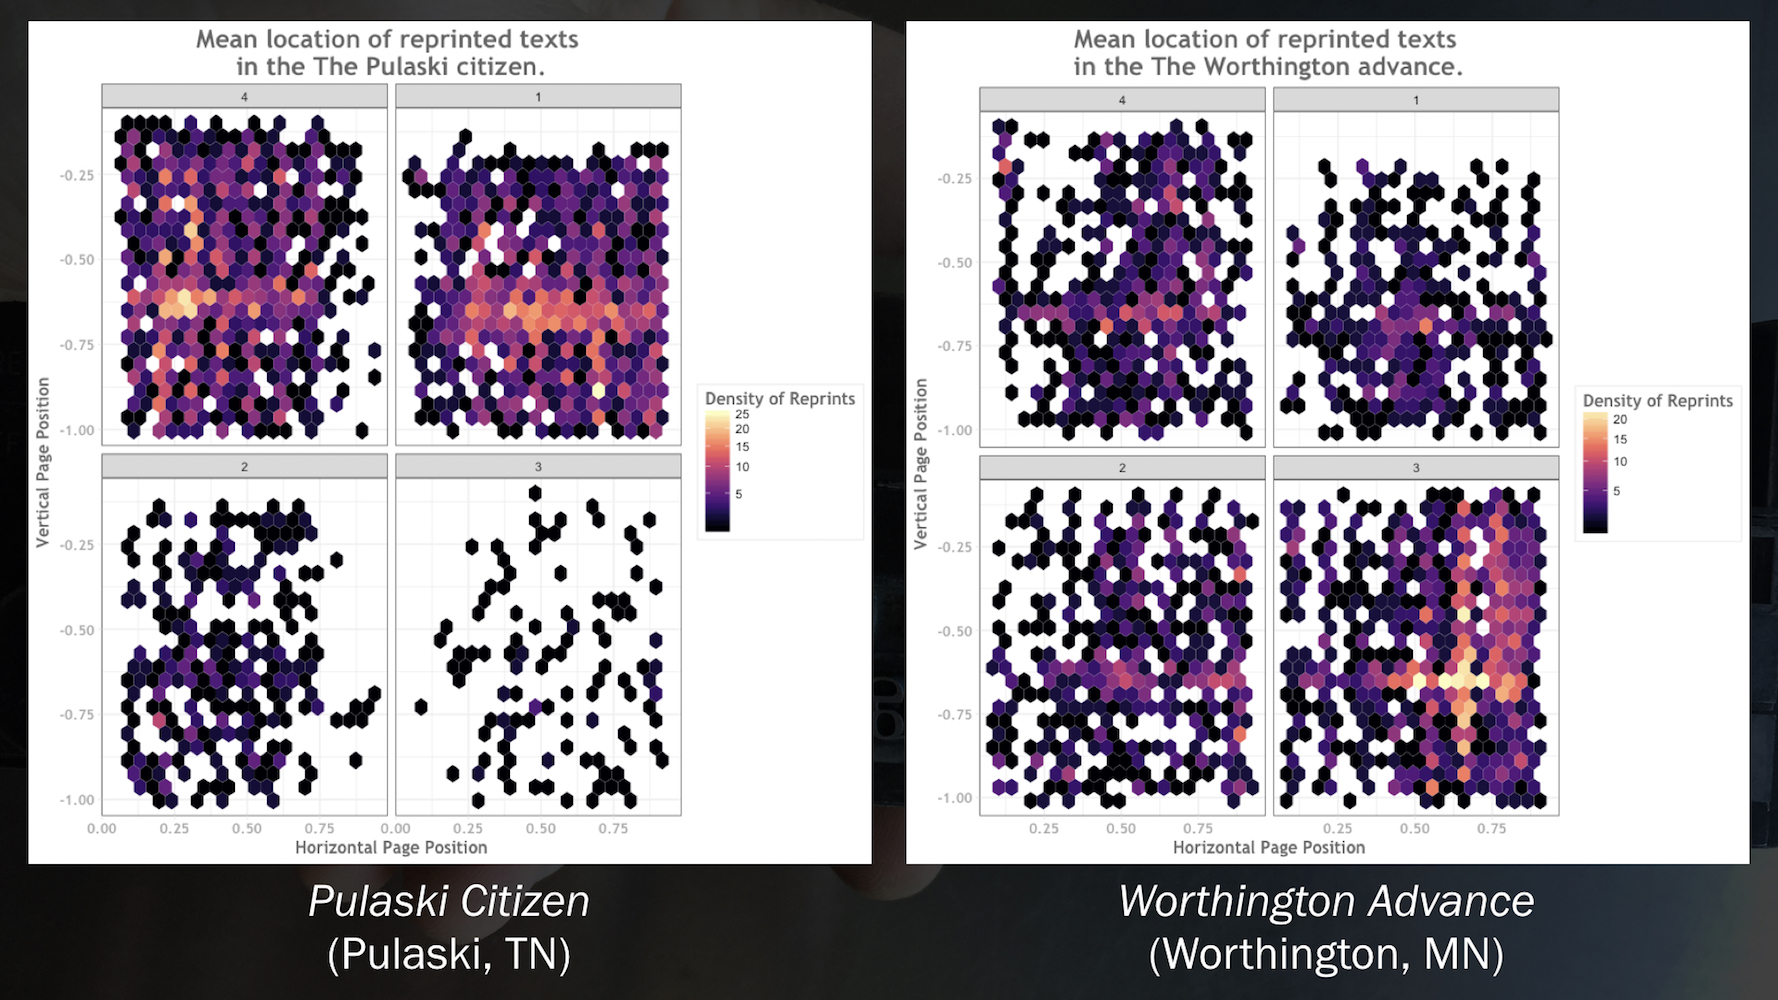 The mean location of reprinted texts in the Pulaski Citizen compared to the Worthington Advance.